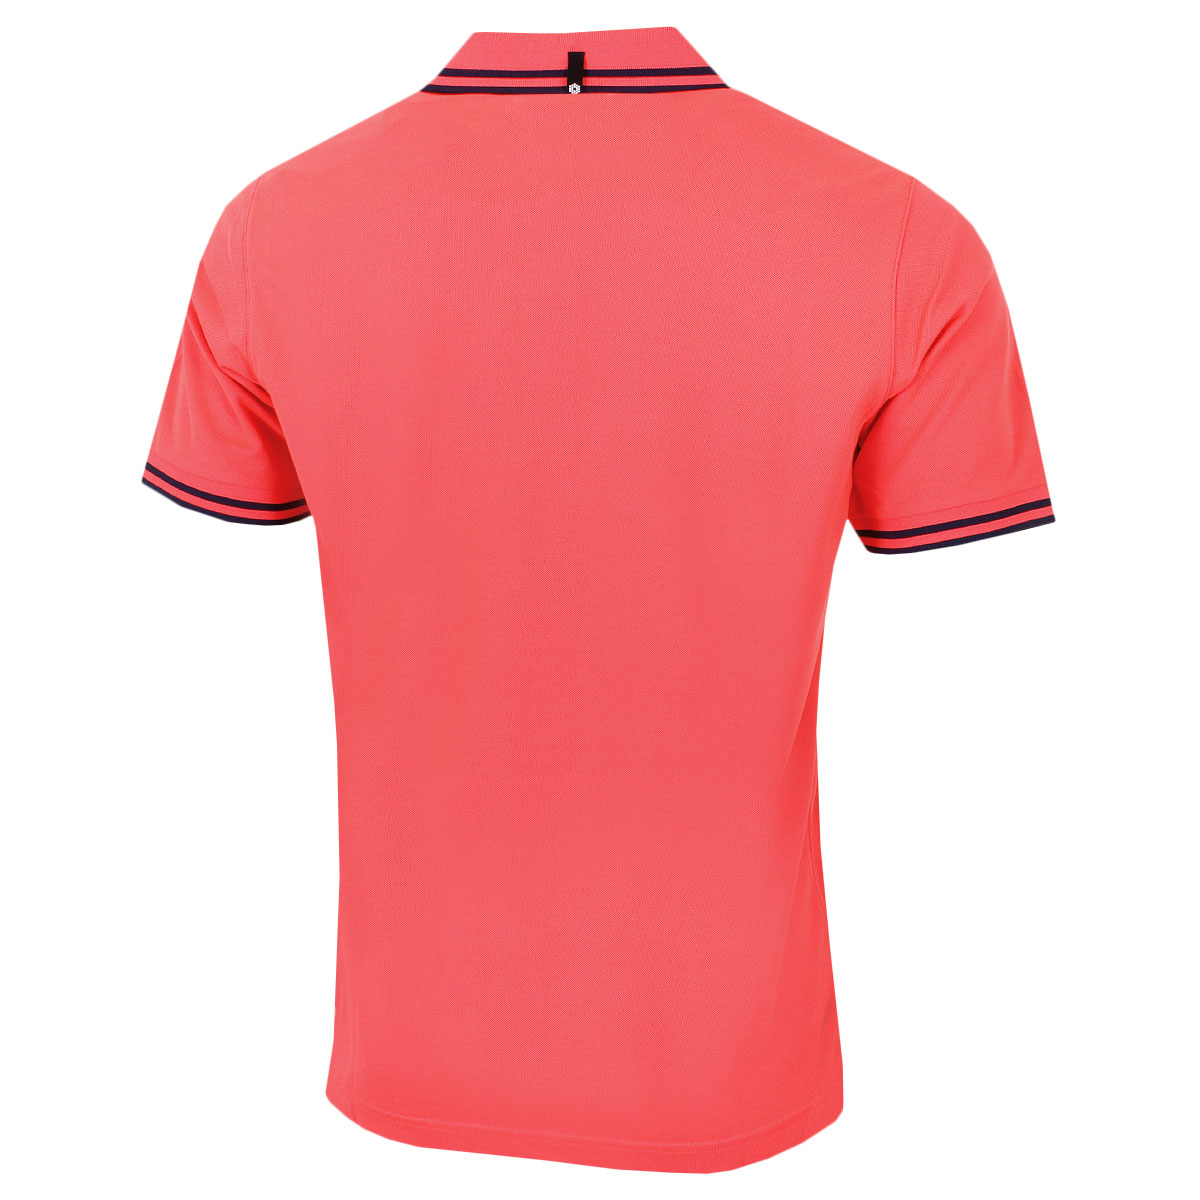 Puma-Golf-Mens-Pounce-Pique-dryCELL-Moisture-Wicking-Polo-Shirt-43-OFF-RRP thumbnail 7